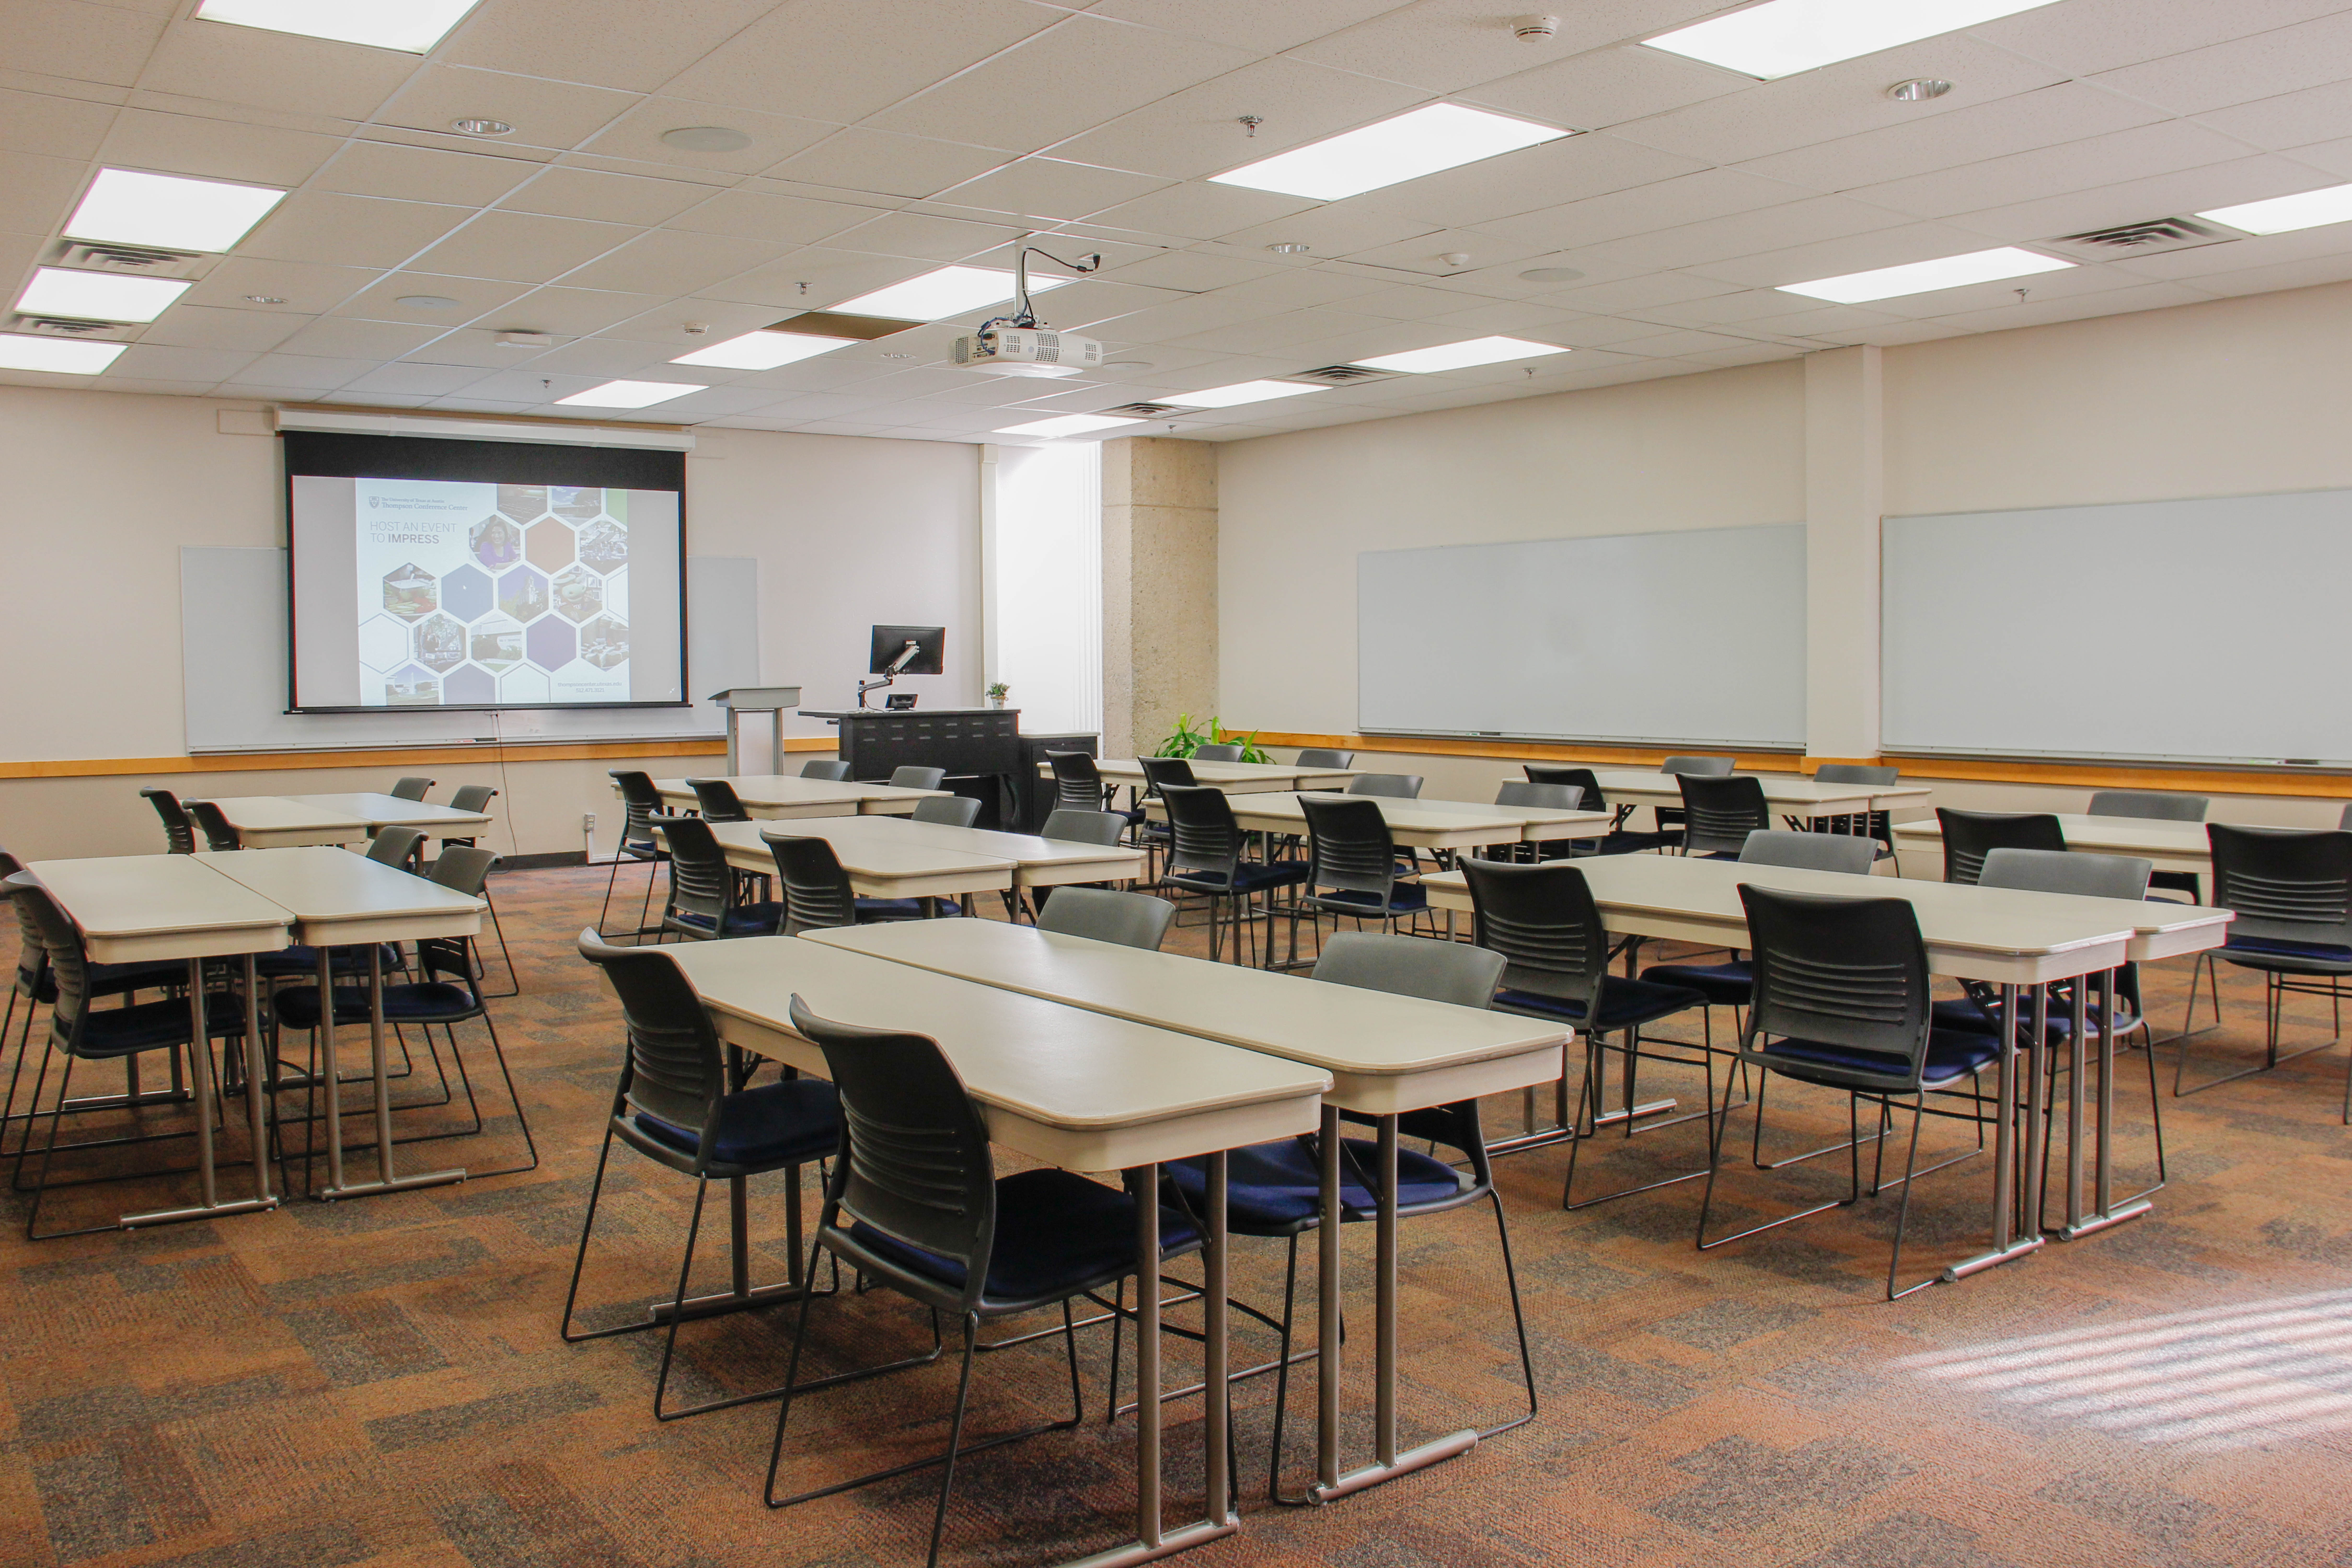 Classroom with tab;es and chairs